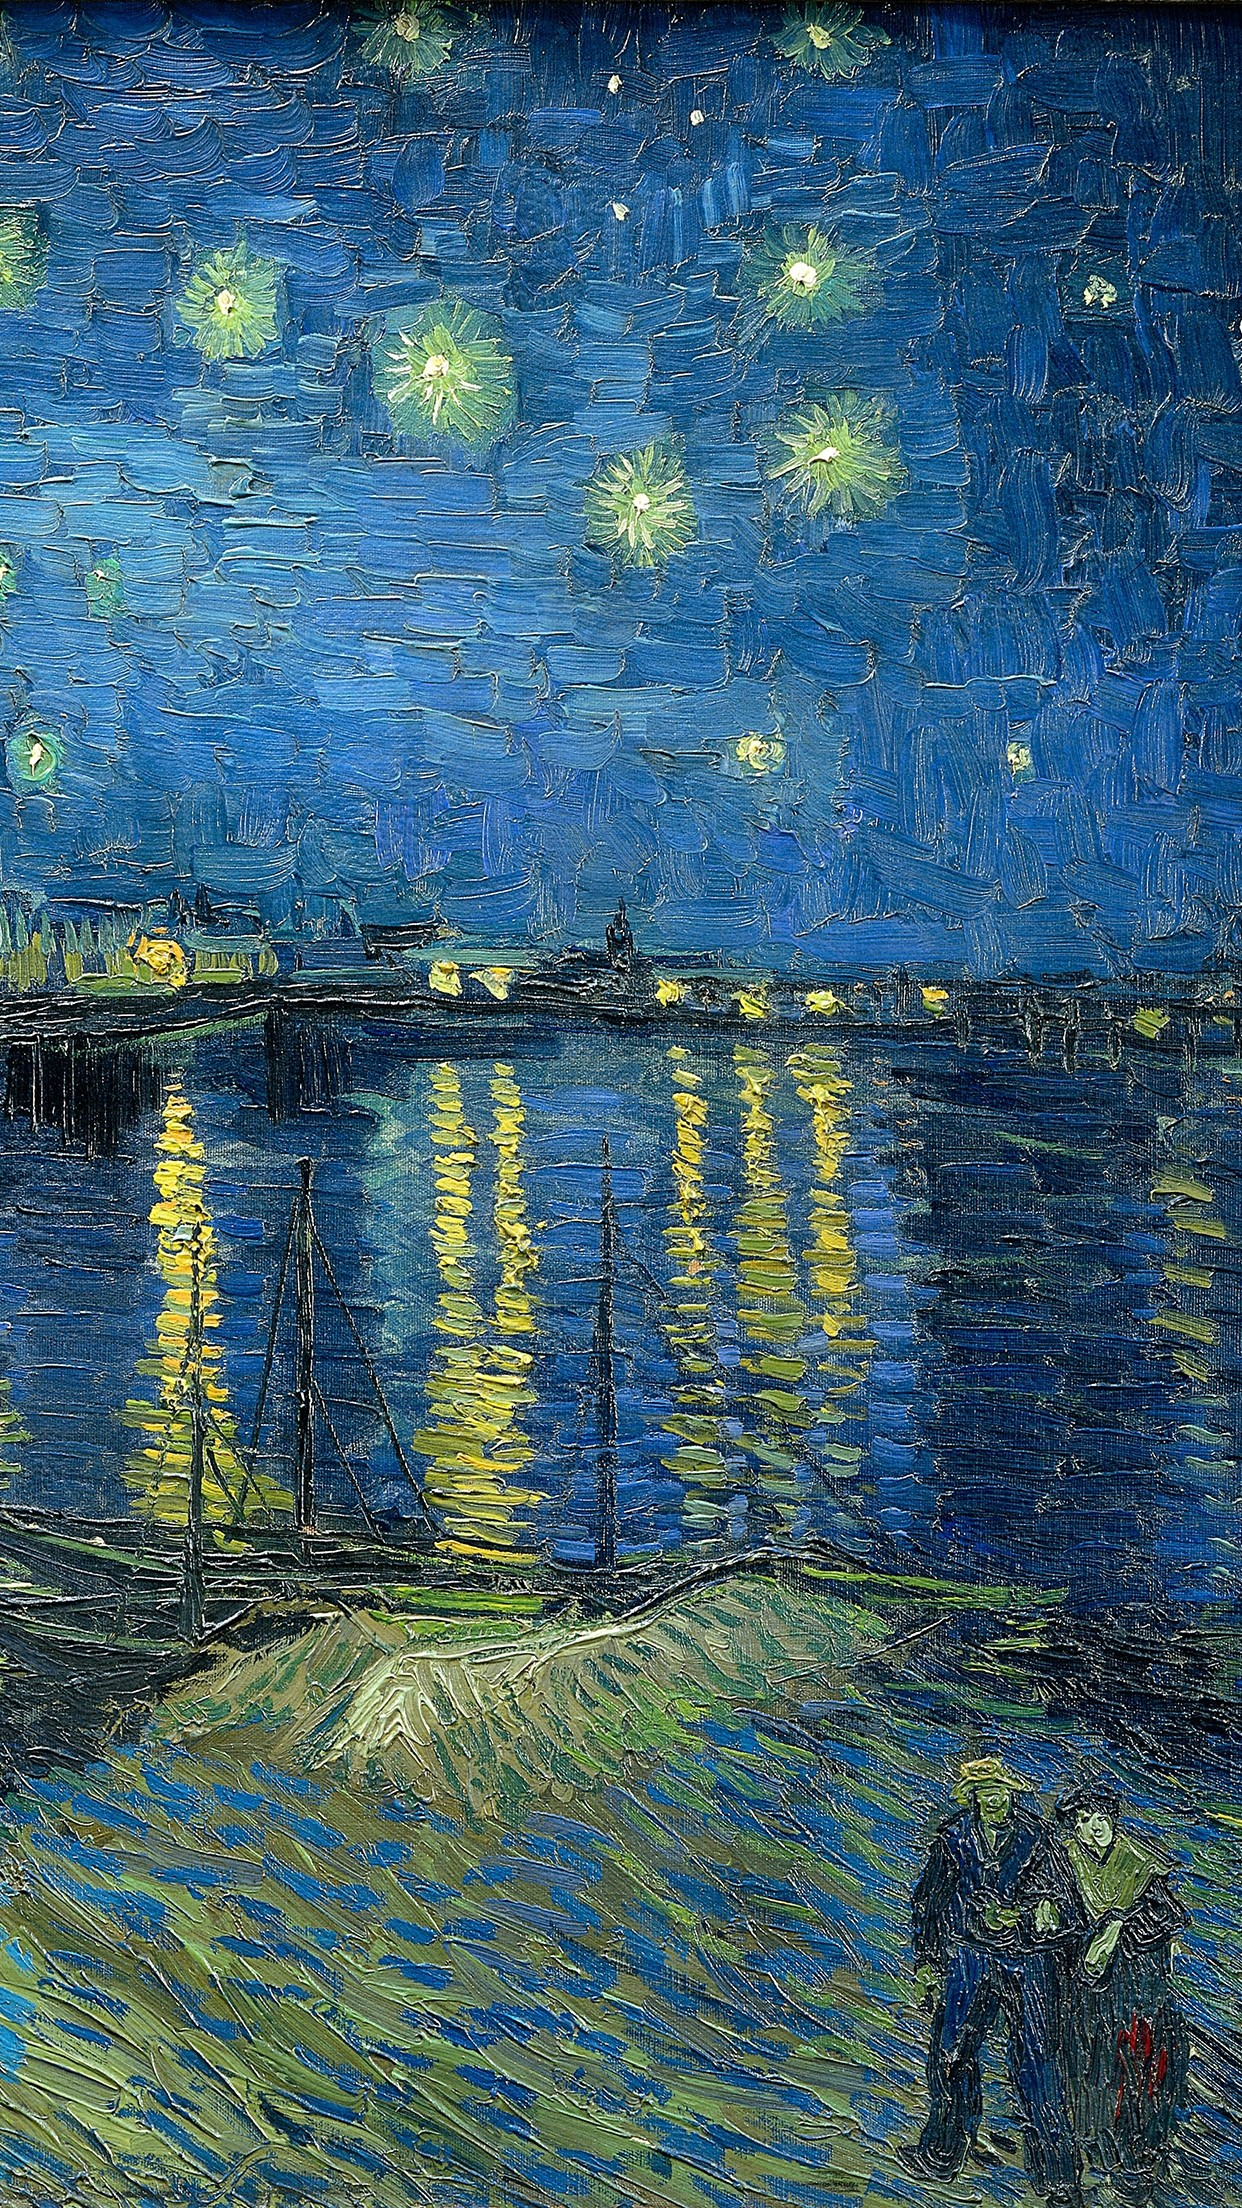 Iphone Backgrounds Art Free Windows Wallpapers Hd Download - Van Gogh Phone Background - HD Wallpaper